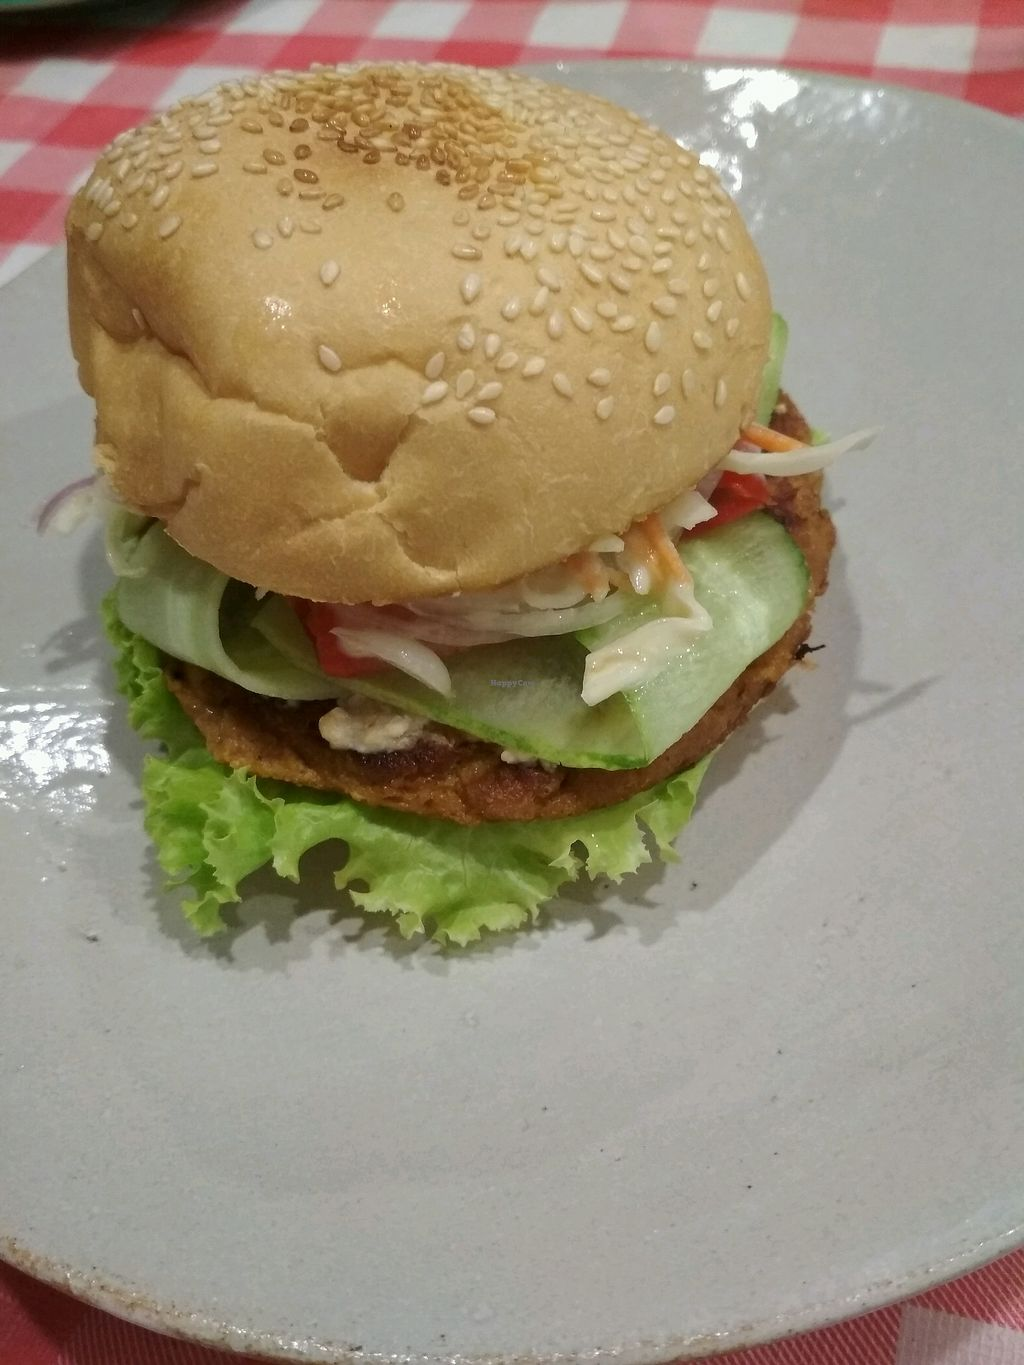 """Photo of Mahob Buos  by <a href=""""/members/profile/evasveganlove"""">evasveganlove</a> <br/>best vegan burger in asia.  <br/> March 3, 2018  - <a href='/contact/abuse/image/106738/366201'>Report</a>"""